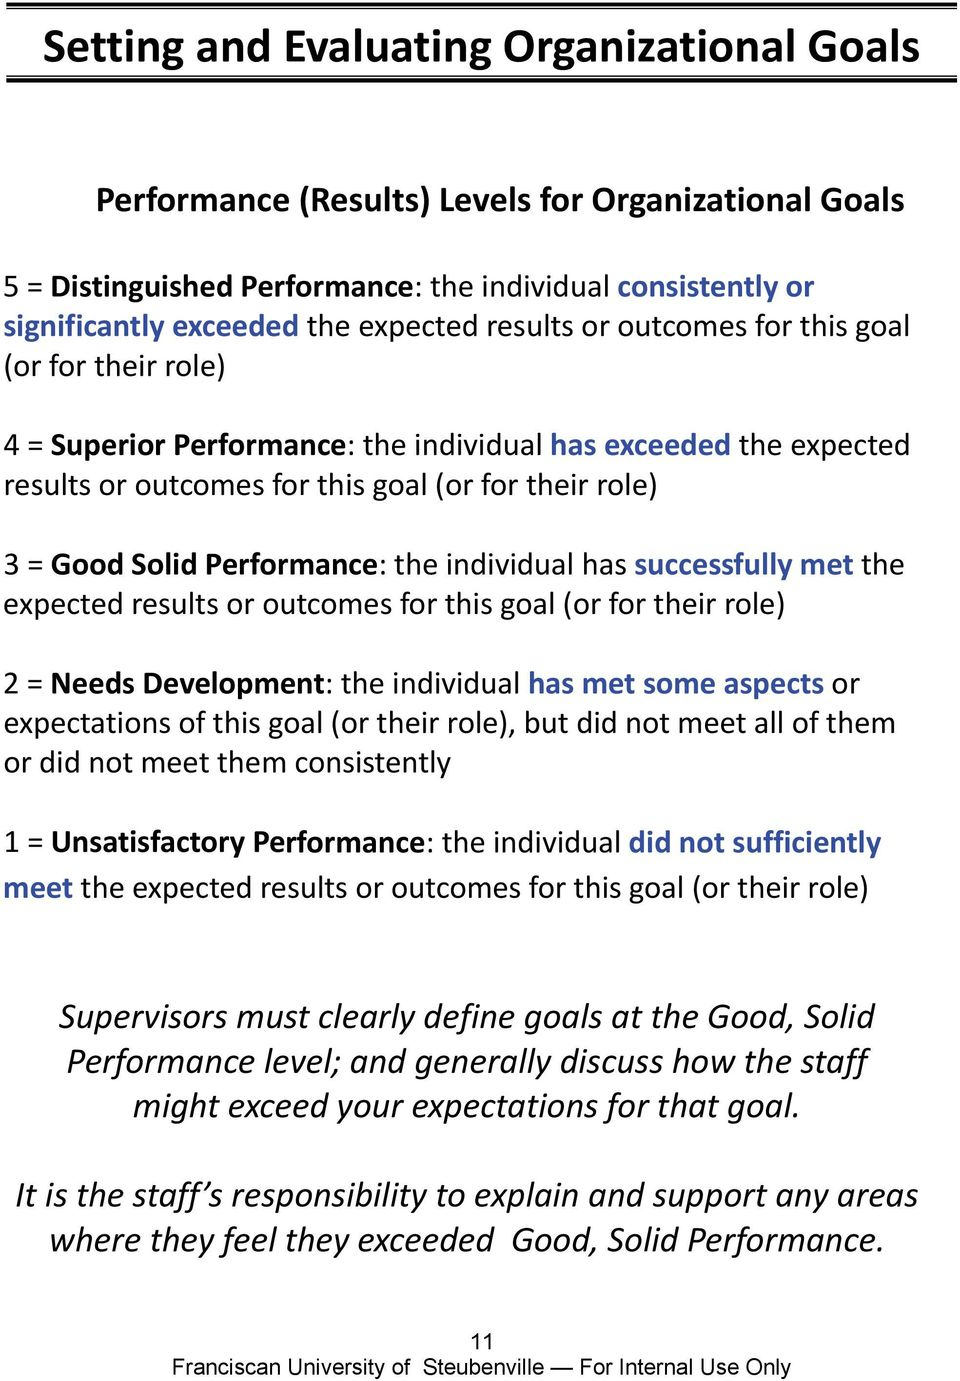 Performance: the individual has successfully met the expected results or outcomes for this goal (or for their role) 2 = Needs Development: the individual has met some aspects or expectations of this